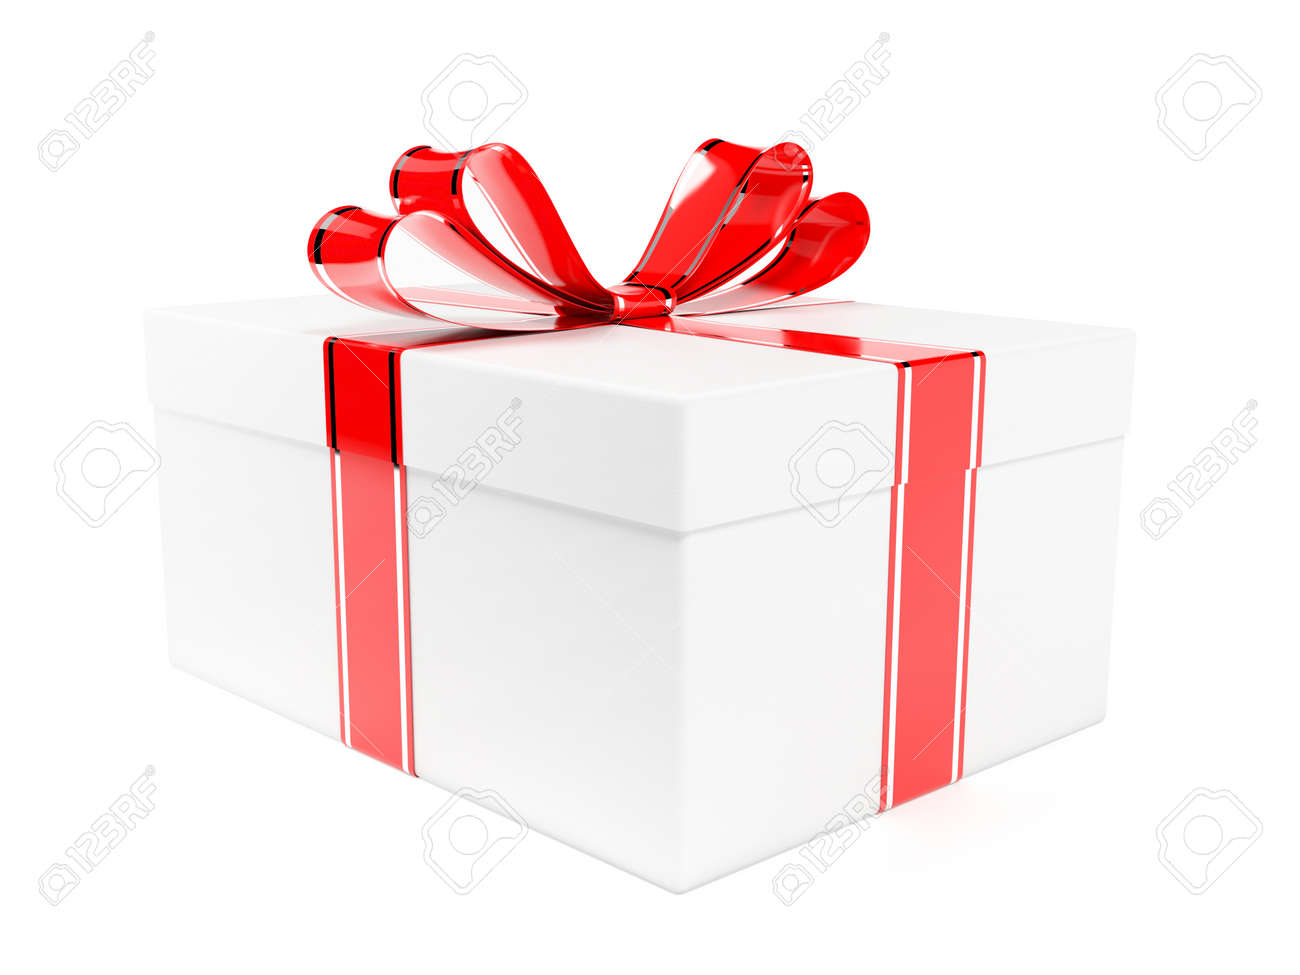 Gift box decorated with shiny red ribbon. 3d rendering illustration isolated on white background - 150521000